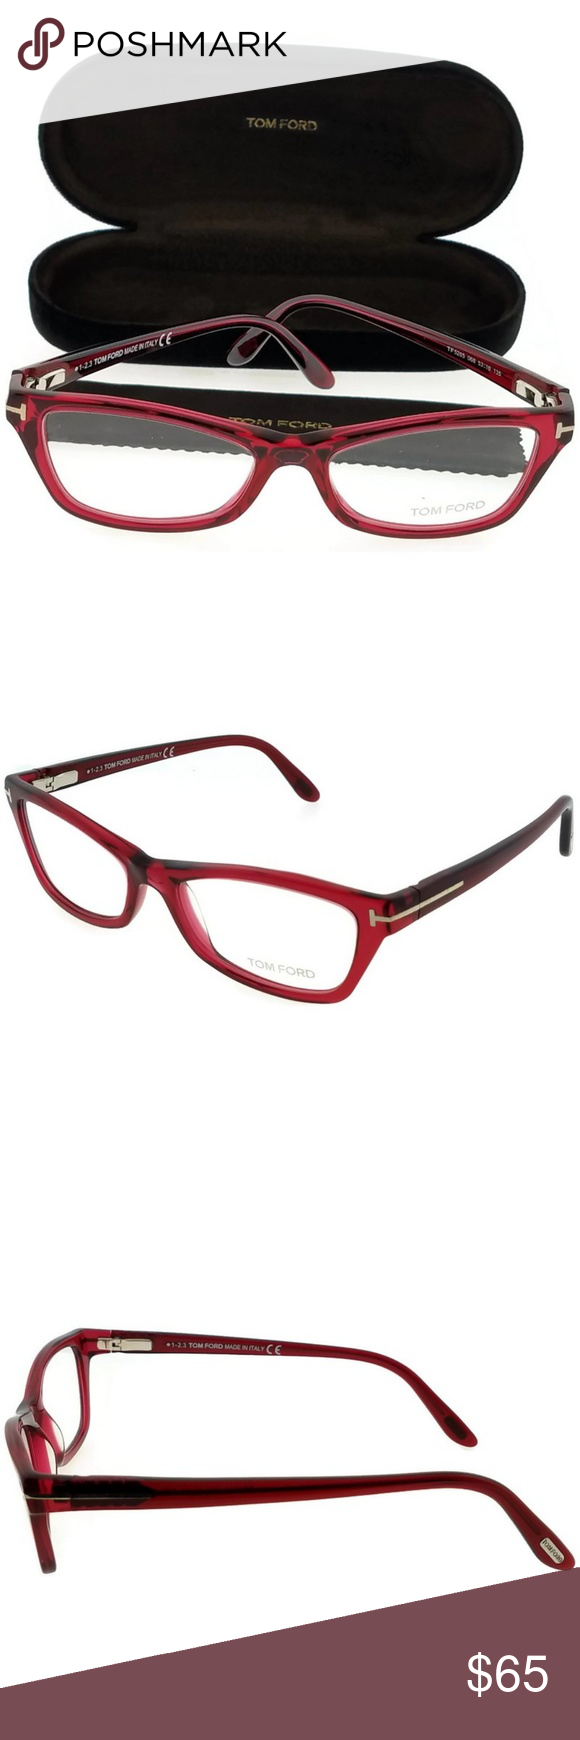 15adf13a2f39 FT5265-068 Tom Ford Eyeglasses New gorgeous authentic Tom Ford FT5265-068  women s red